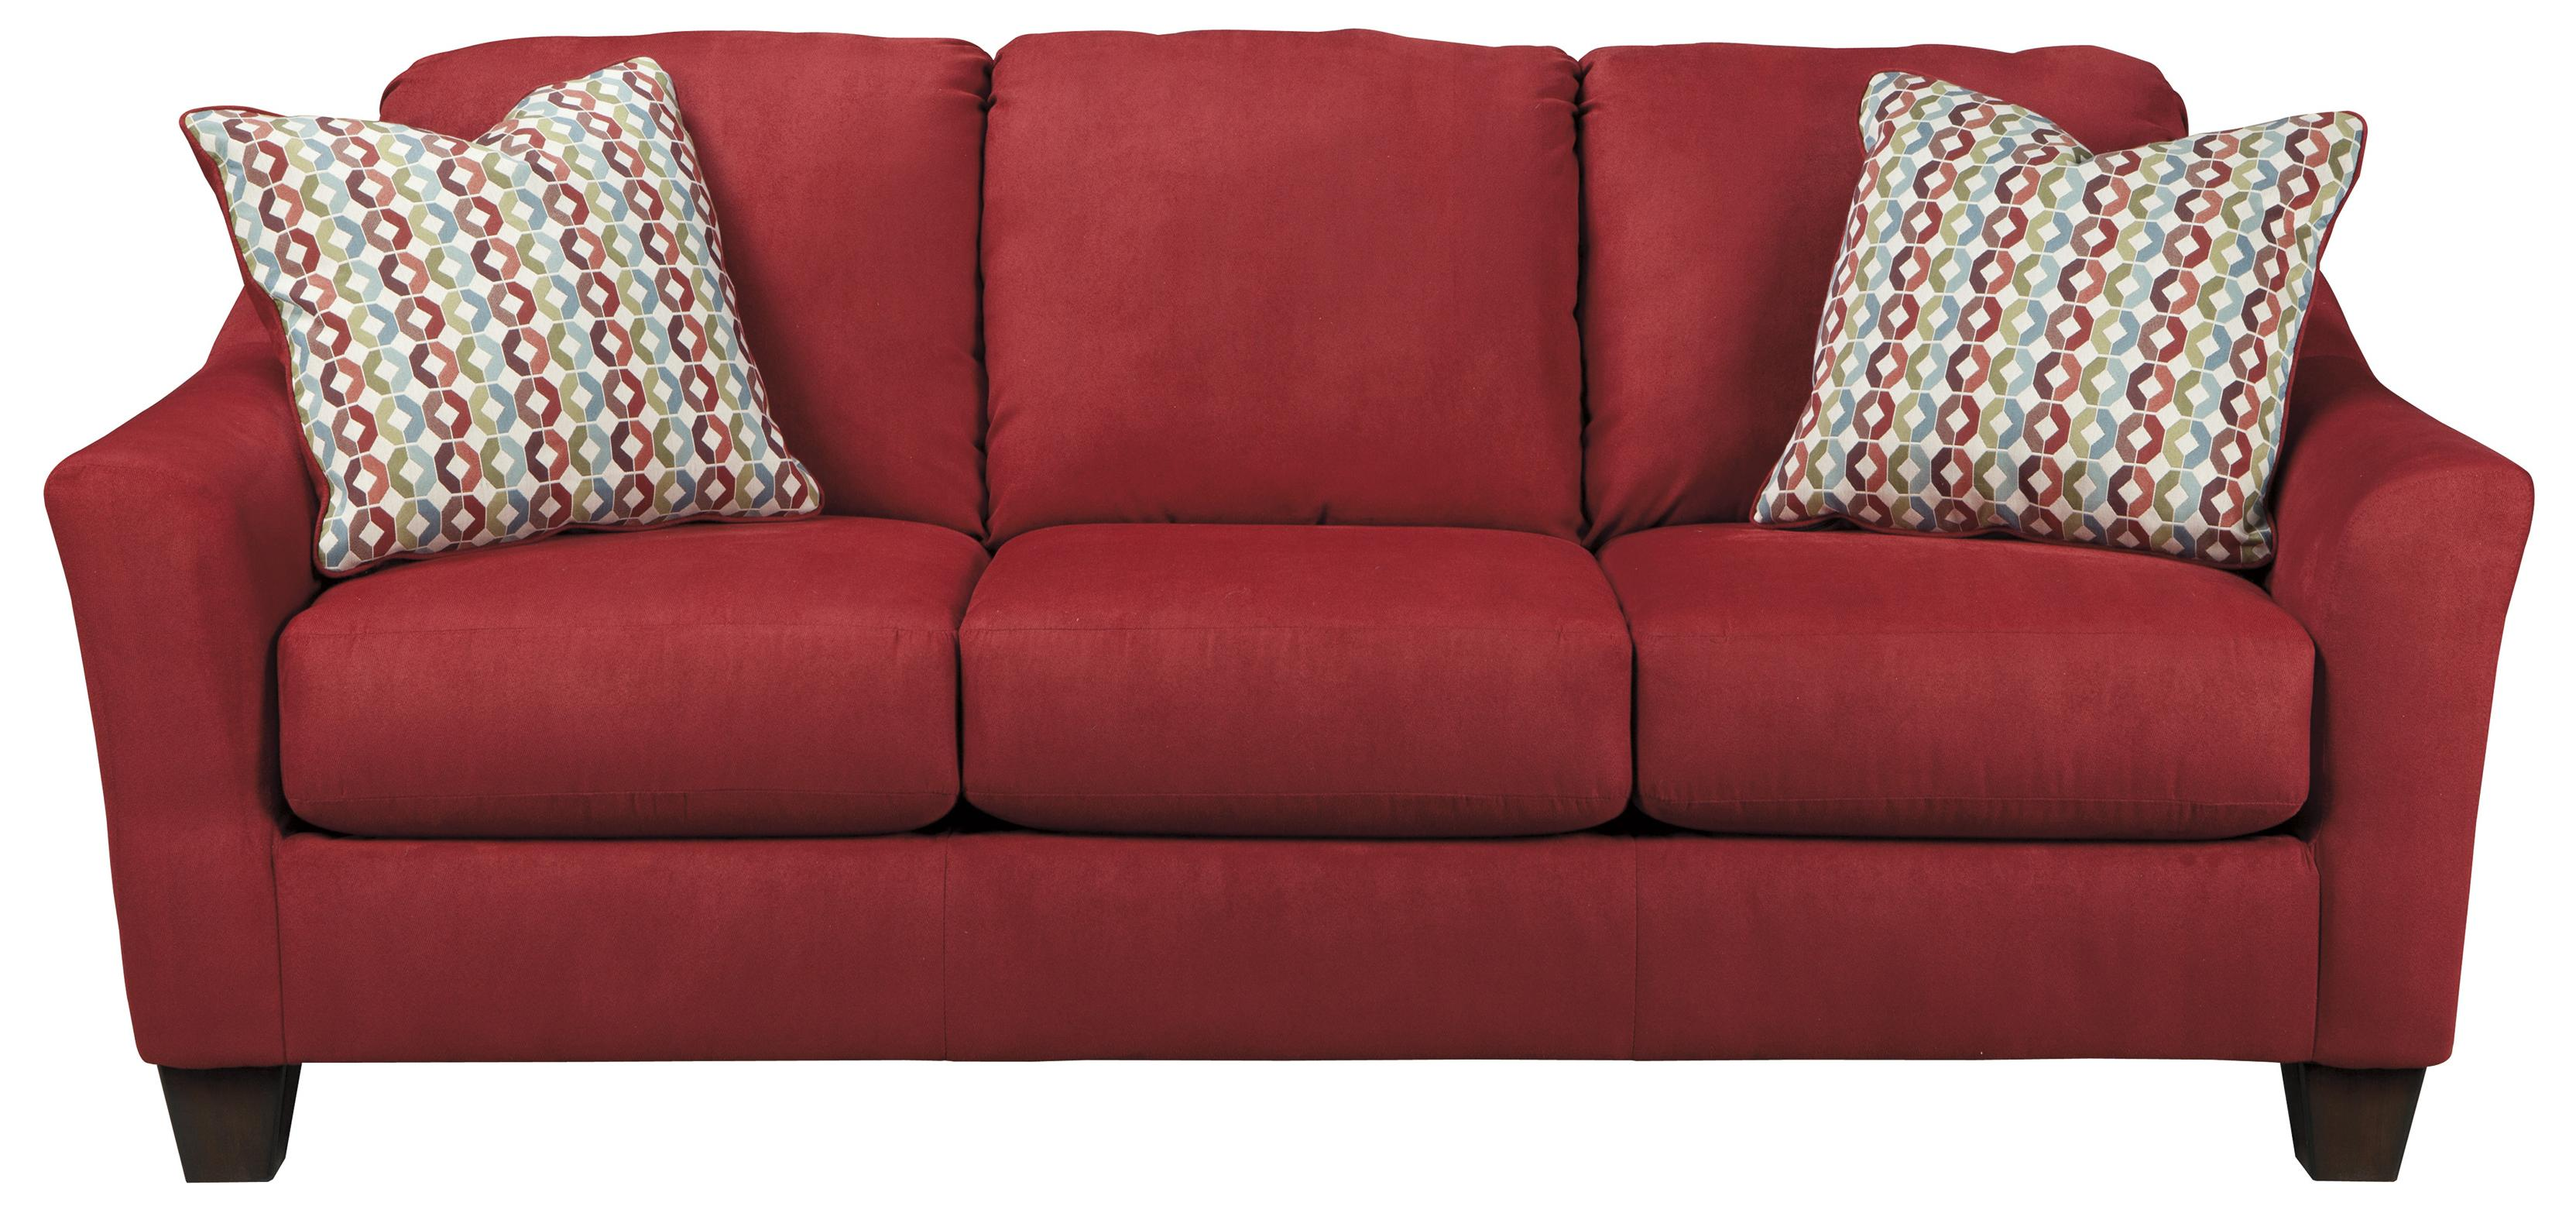 Sofa Mart Spokane Valley Wa Spice Contemporary Queen Sofa Sleeper With Flared Arms